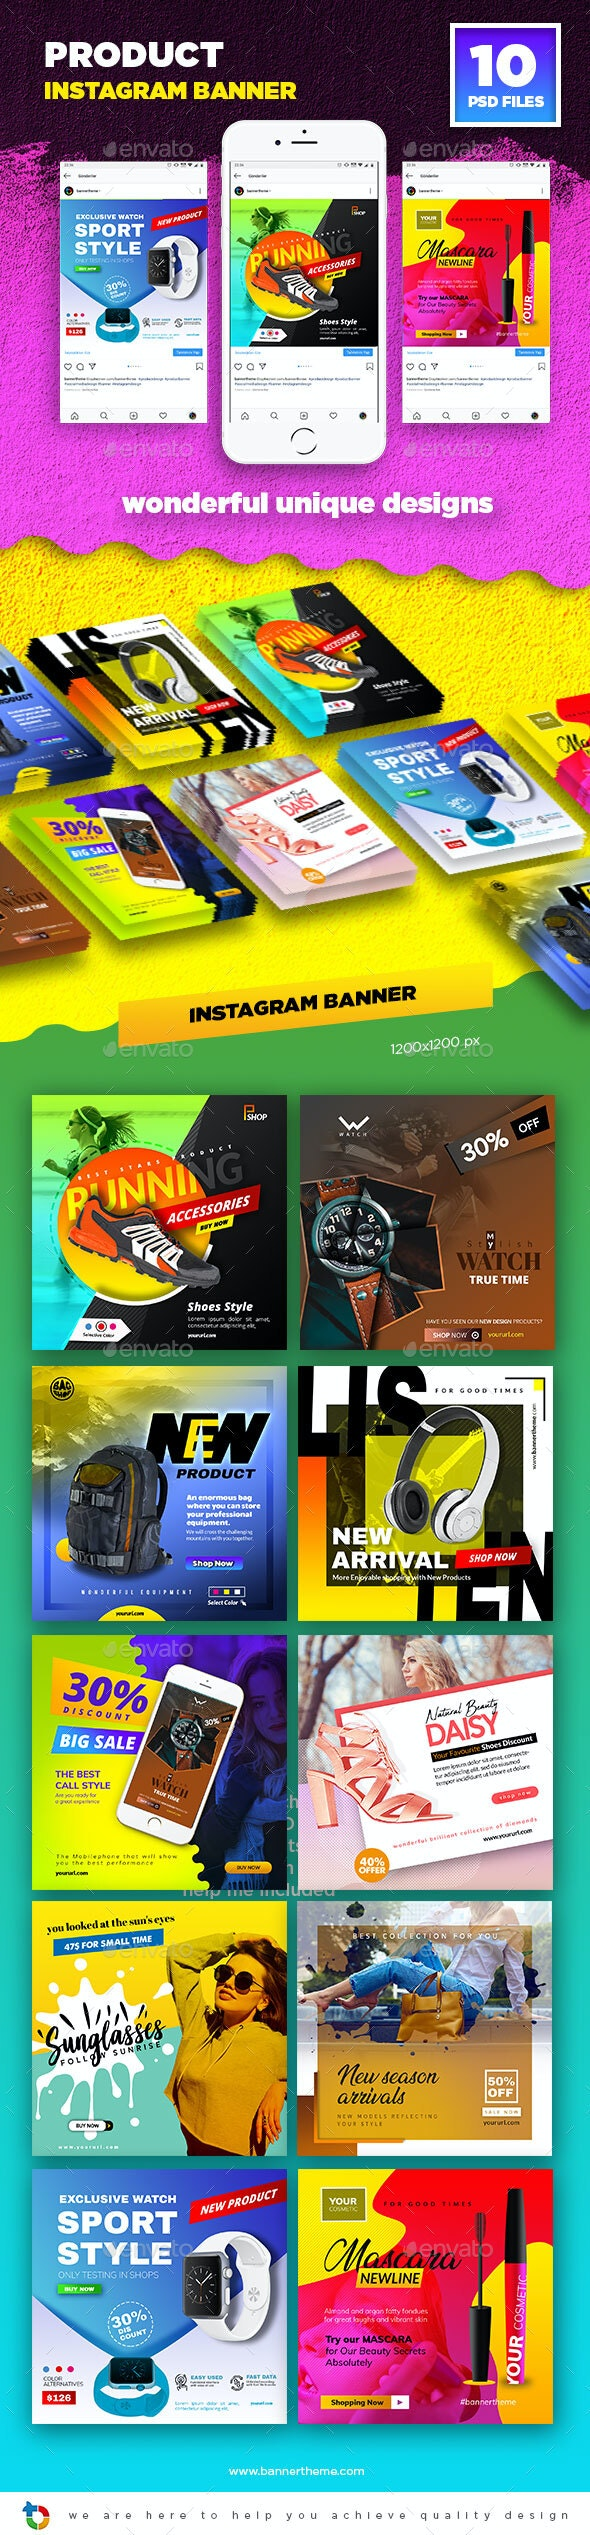 Product Instagram Banner - Social Media Web Elements